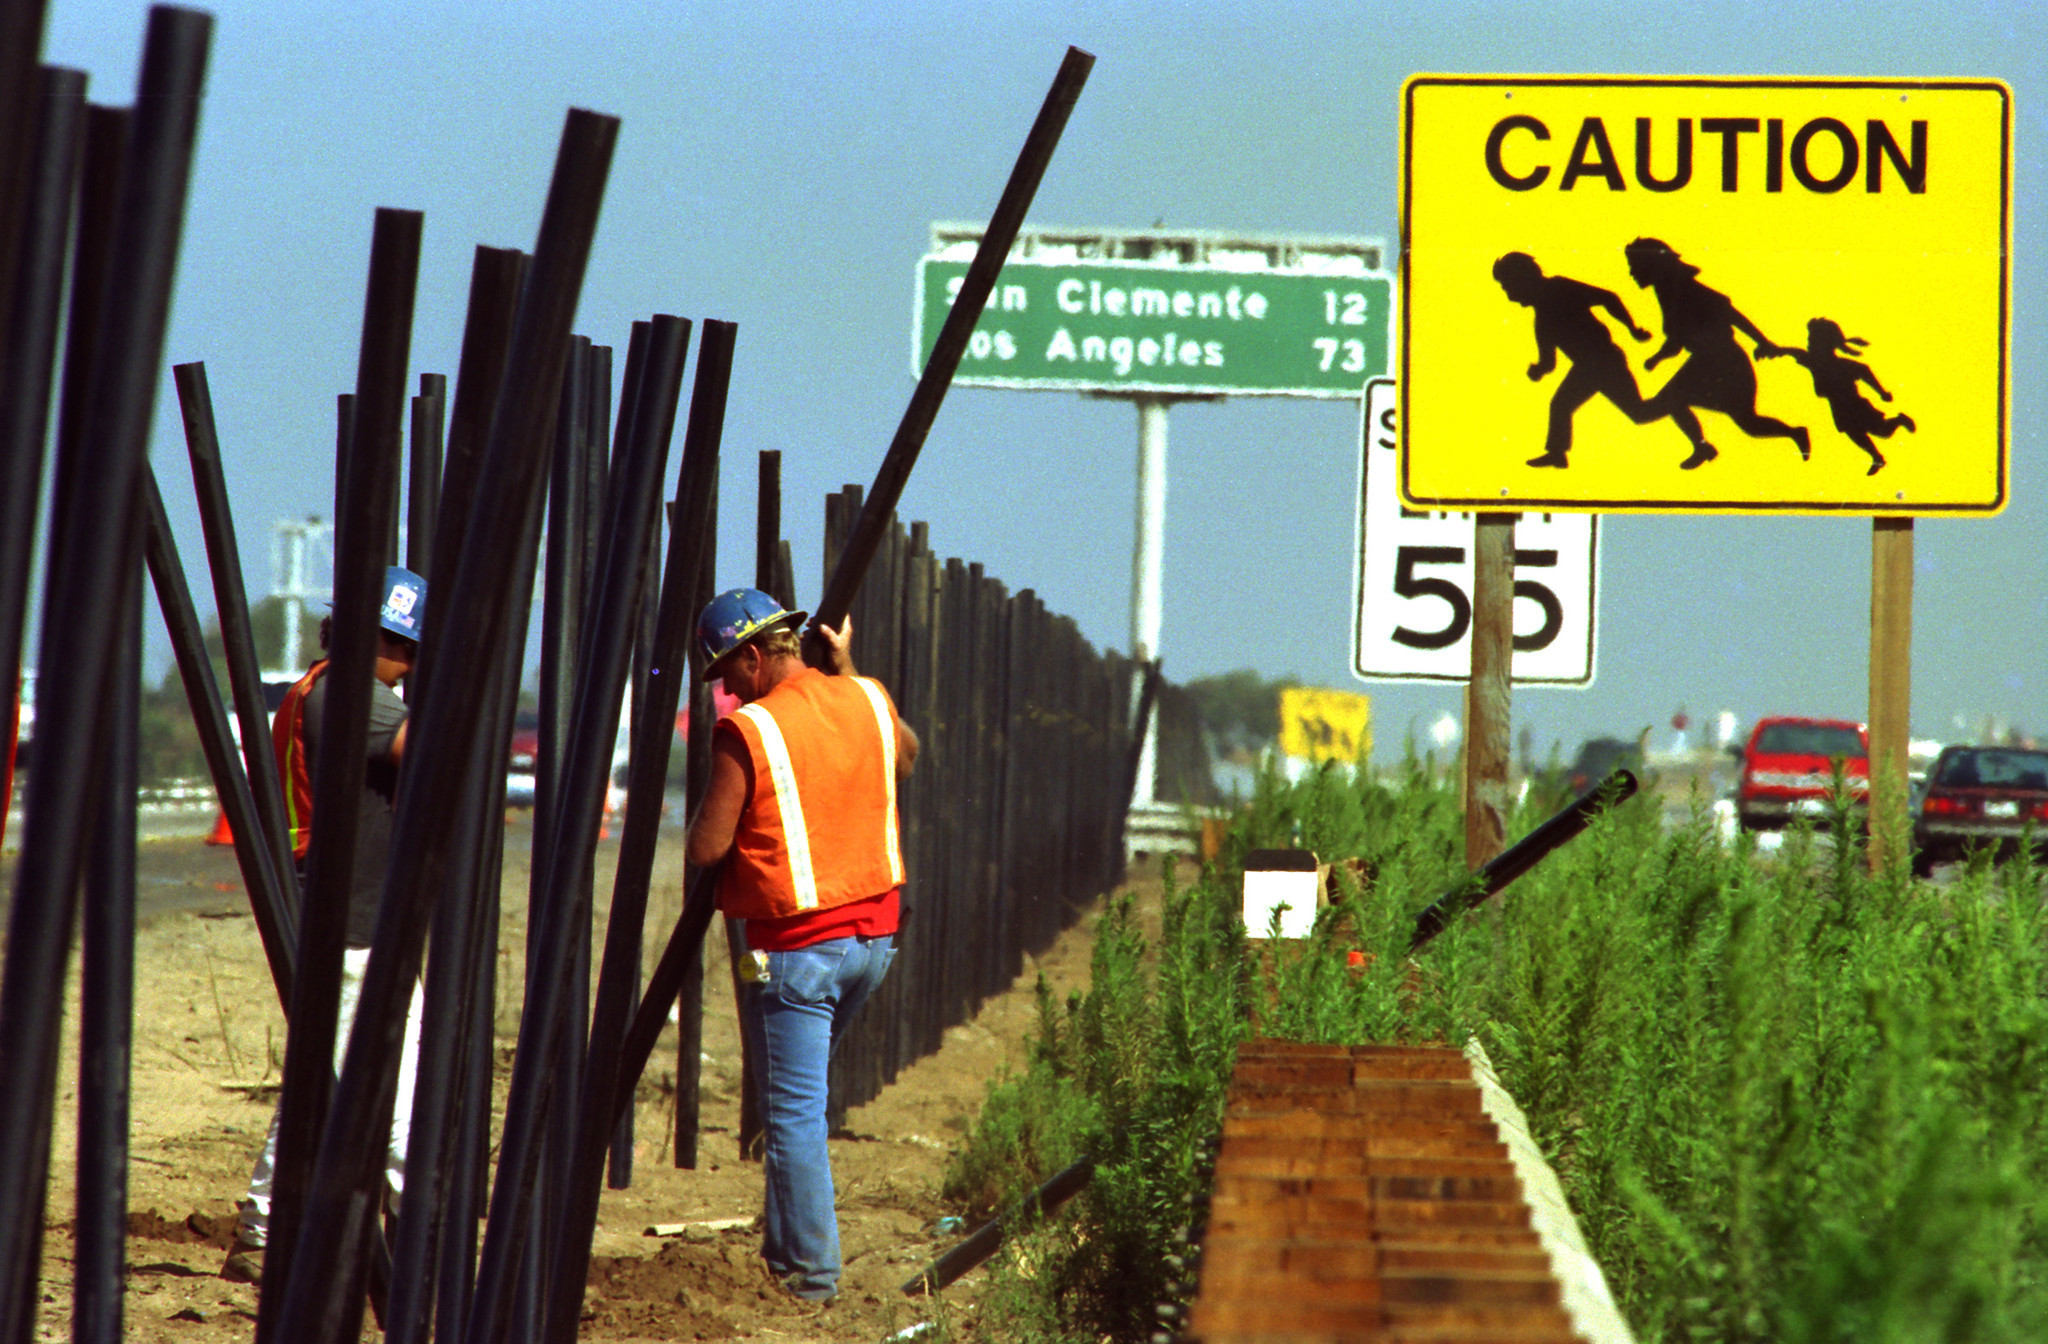 Contractors in 1993 set posts for an 8-foot fence in the median of the 5 Freeway in the shadow of an iconic yellow pedestrian warning sign.